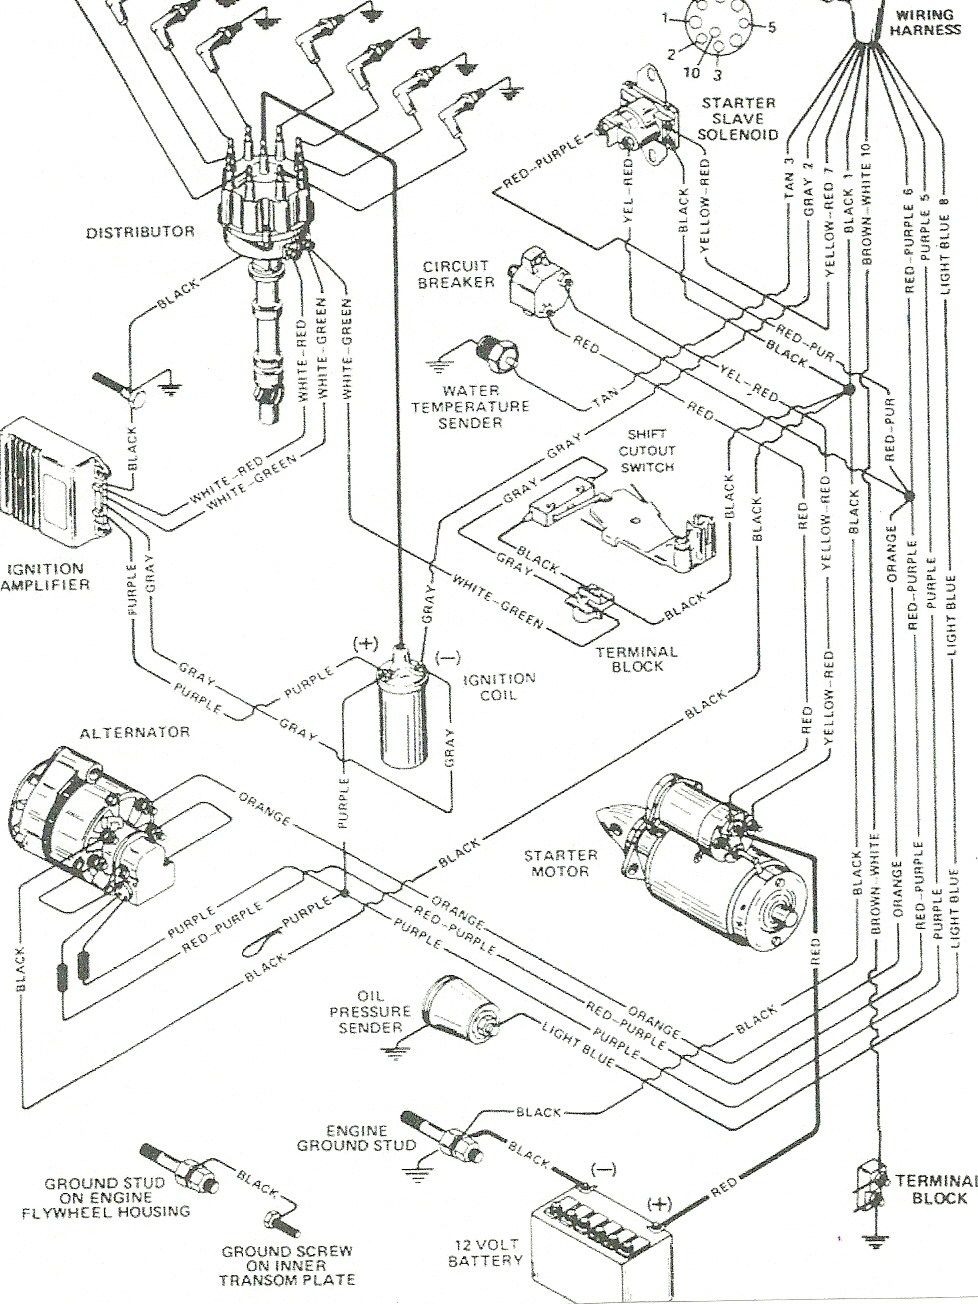 mercruiser 30 wiring diagram, Wiring diagram